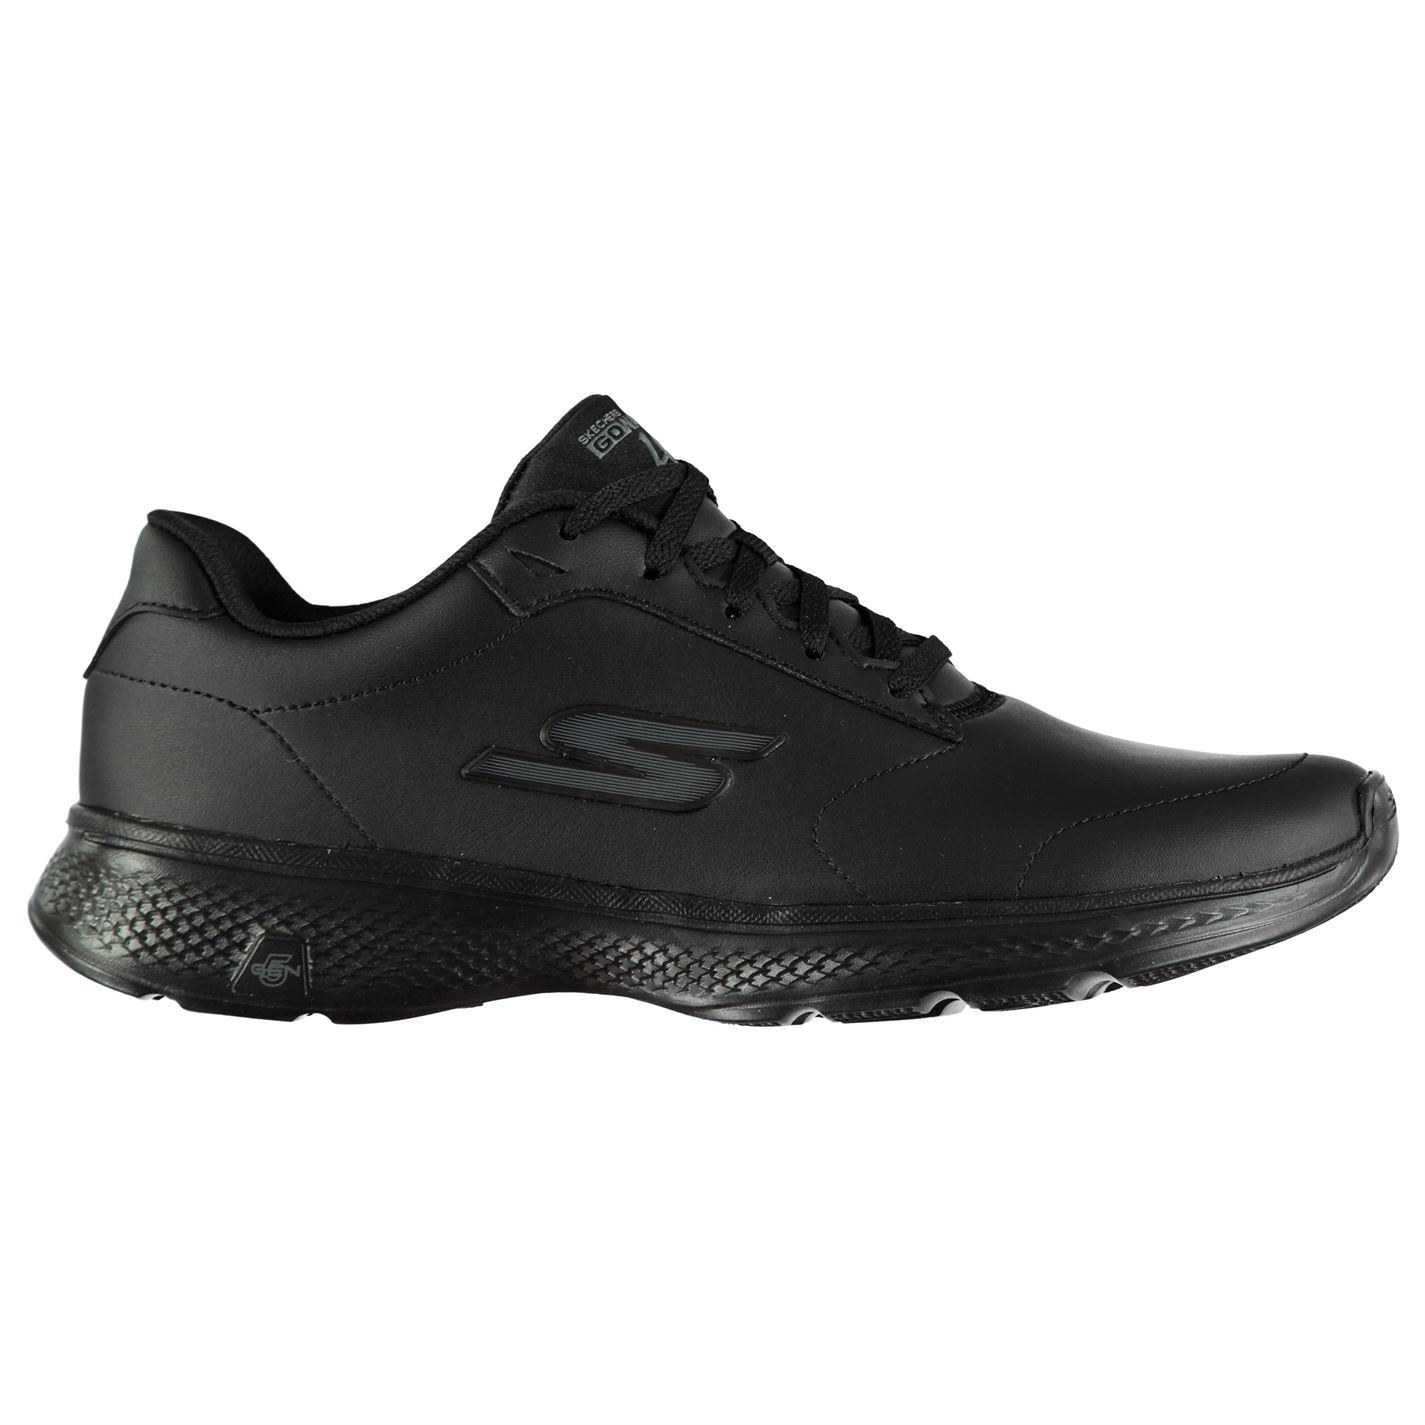 c4361aa4 These Skechers Go Walk 4 Mens Trainers have been developed with GOGA  Pillars technology which offers exceptional cushioning with every step you  take, ...